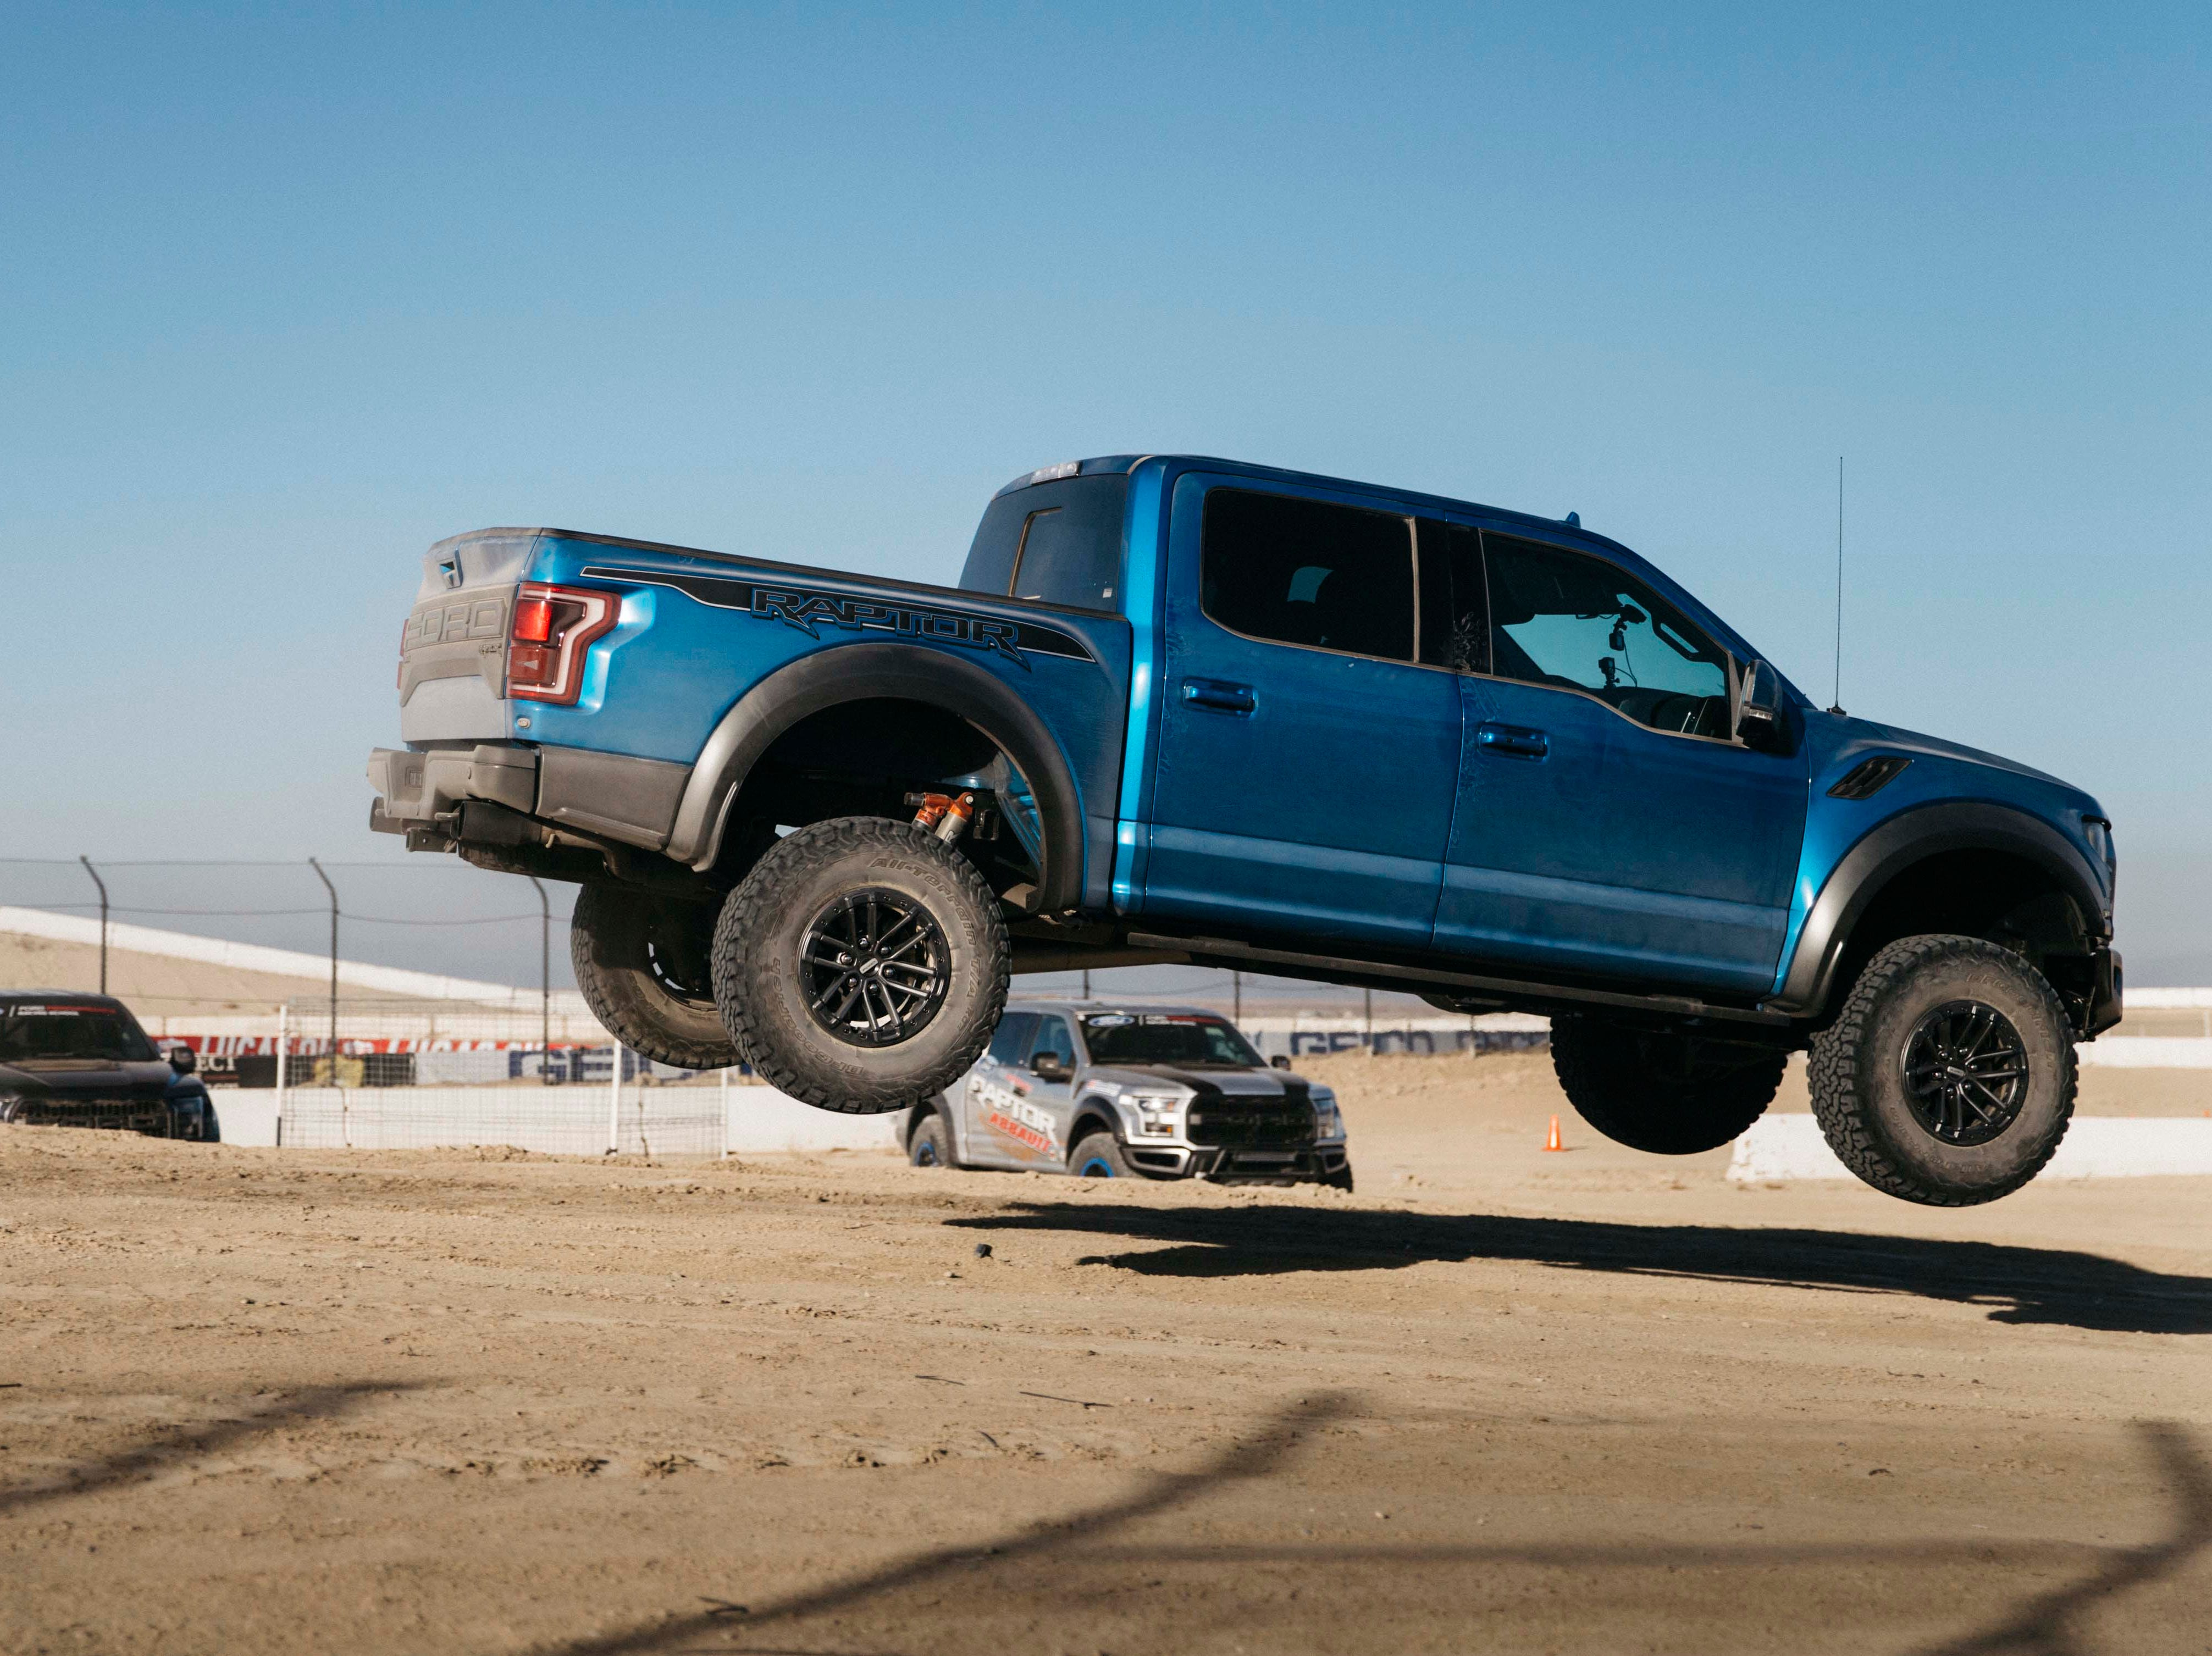 Wild child. The 5,500-pound, 2019 Ford F-150 Raptor negotiates a jump at 60 mph, landing without drama thanks to its robust chassis engineering and Fox Live Valve shocks.